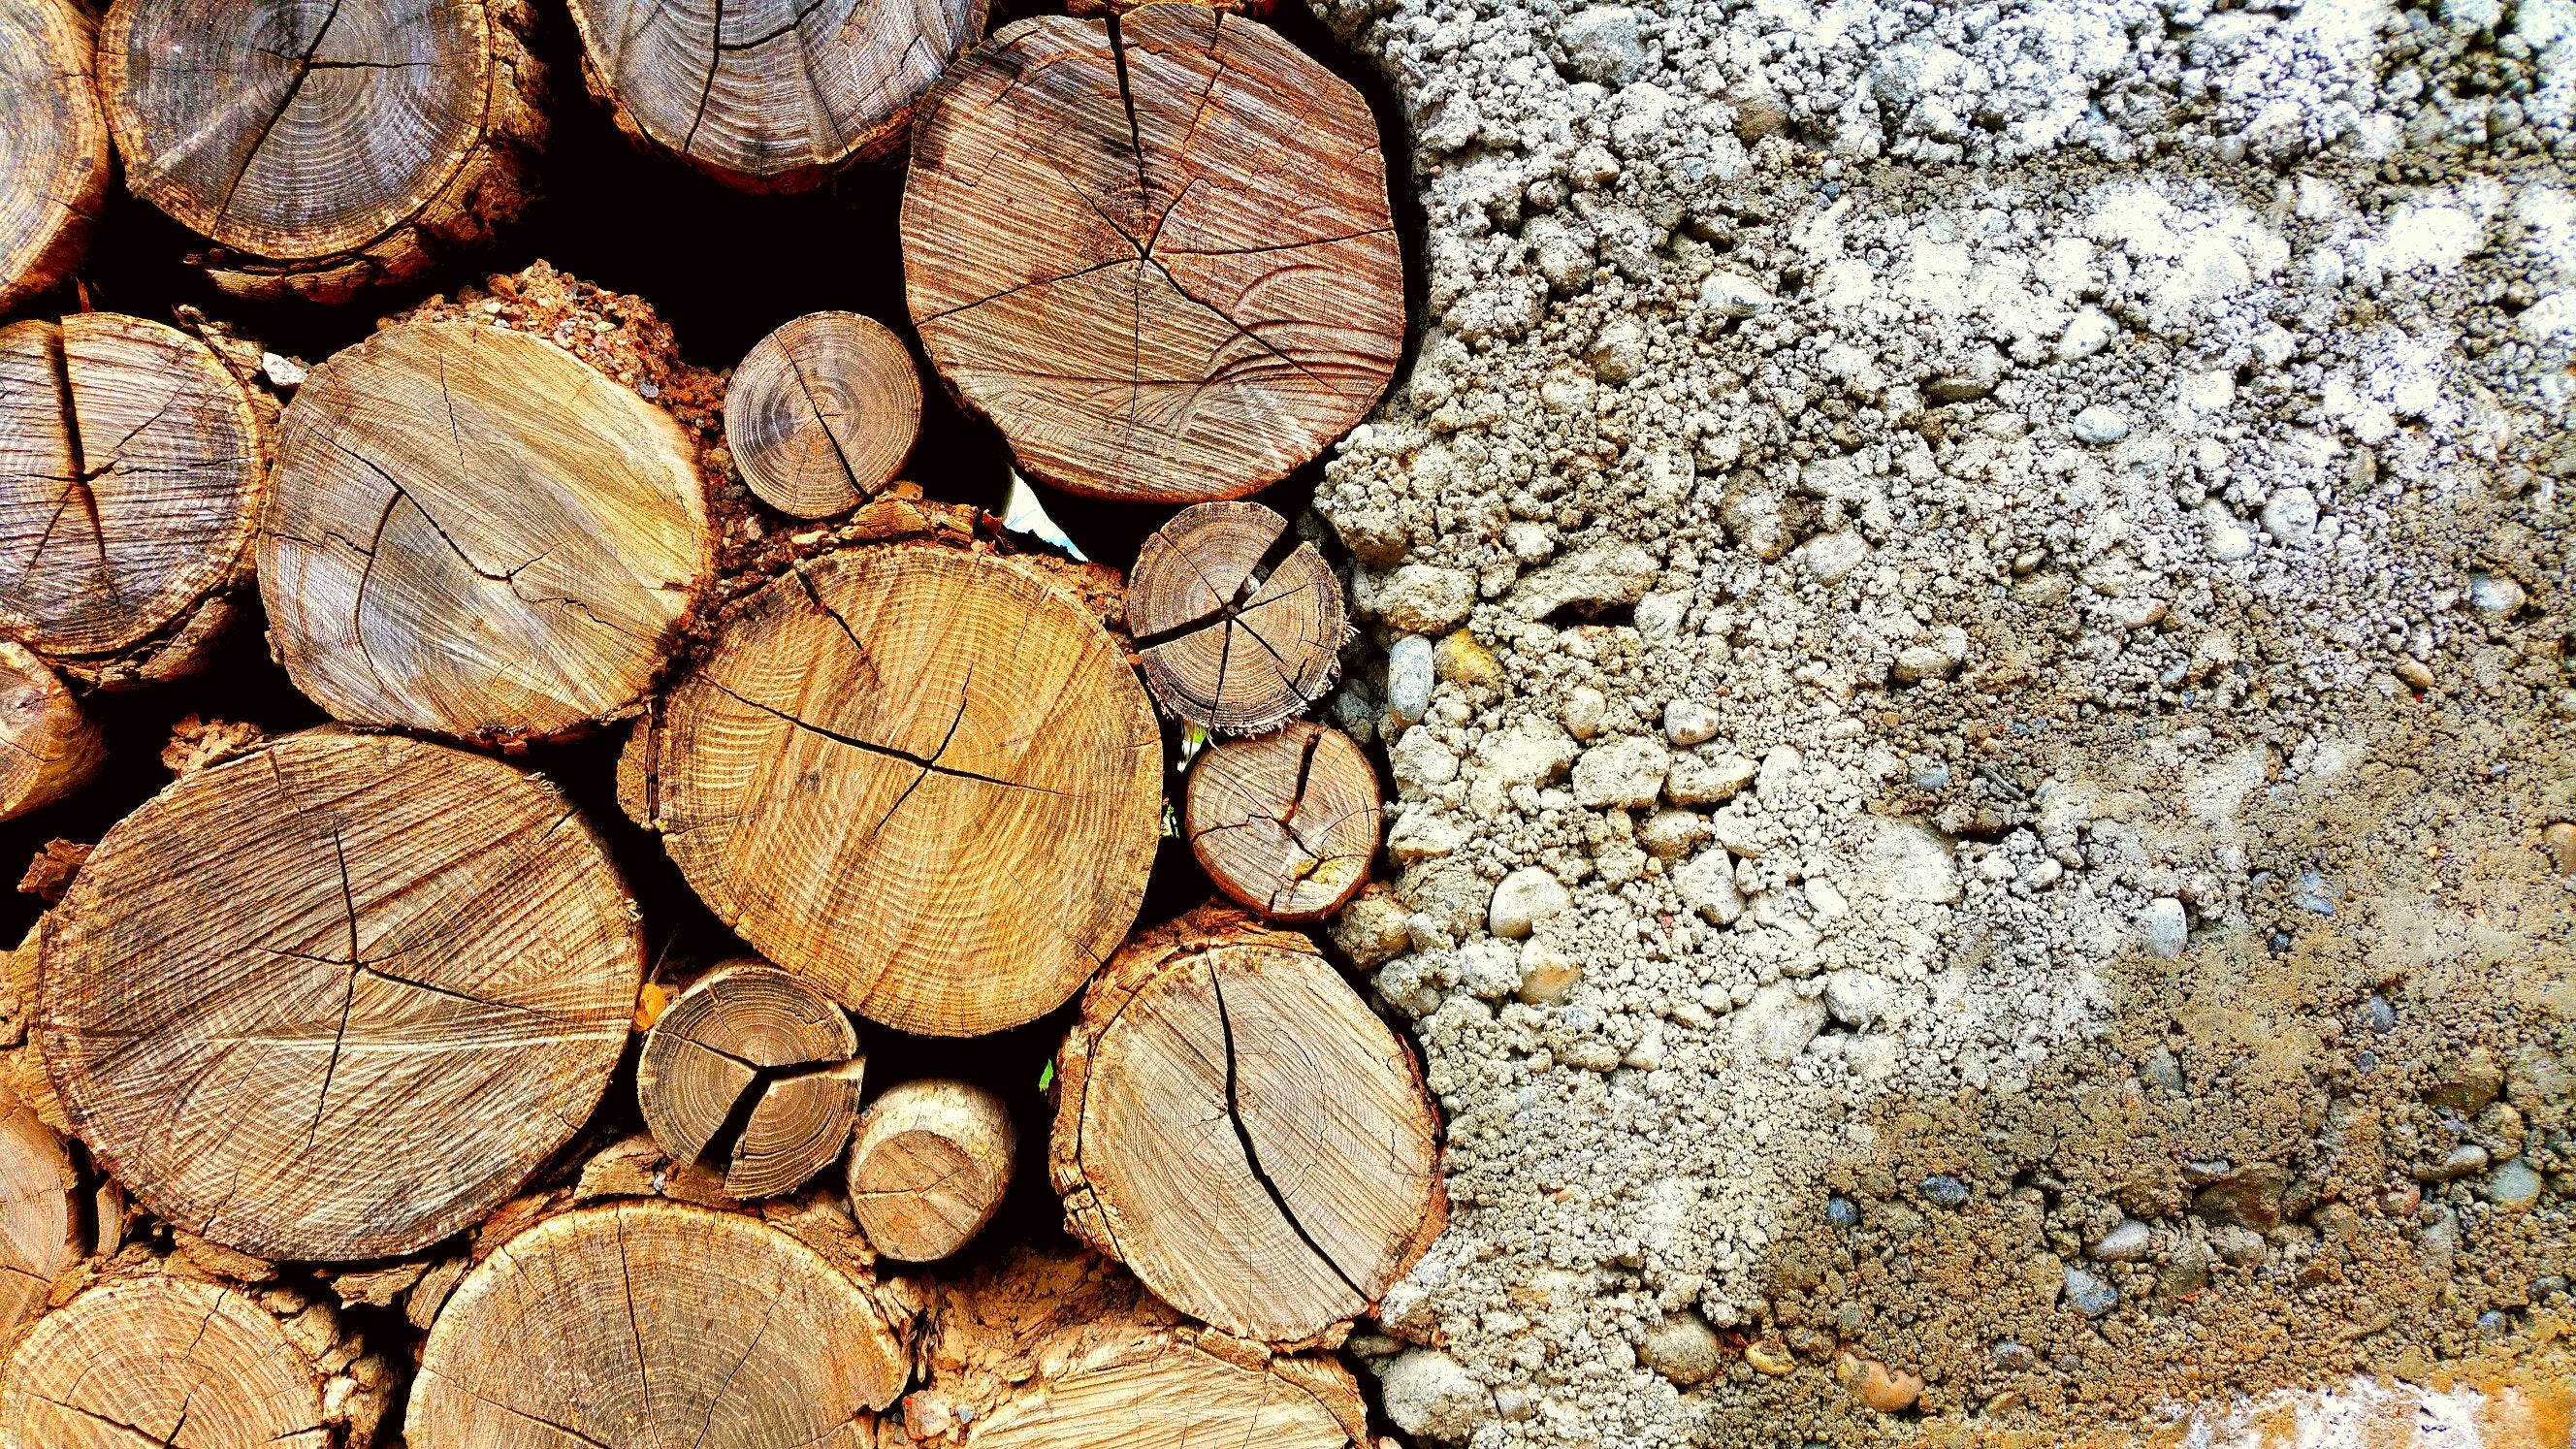 Photo of Brown Log and White Pebbles, Tree trunks, Tree log, Timber, Surface, HQ Photo